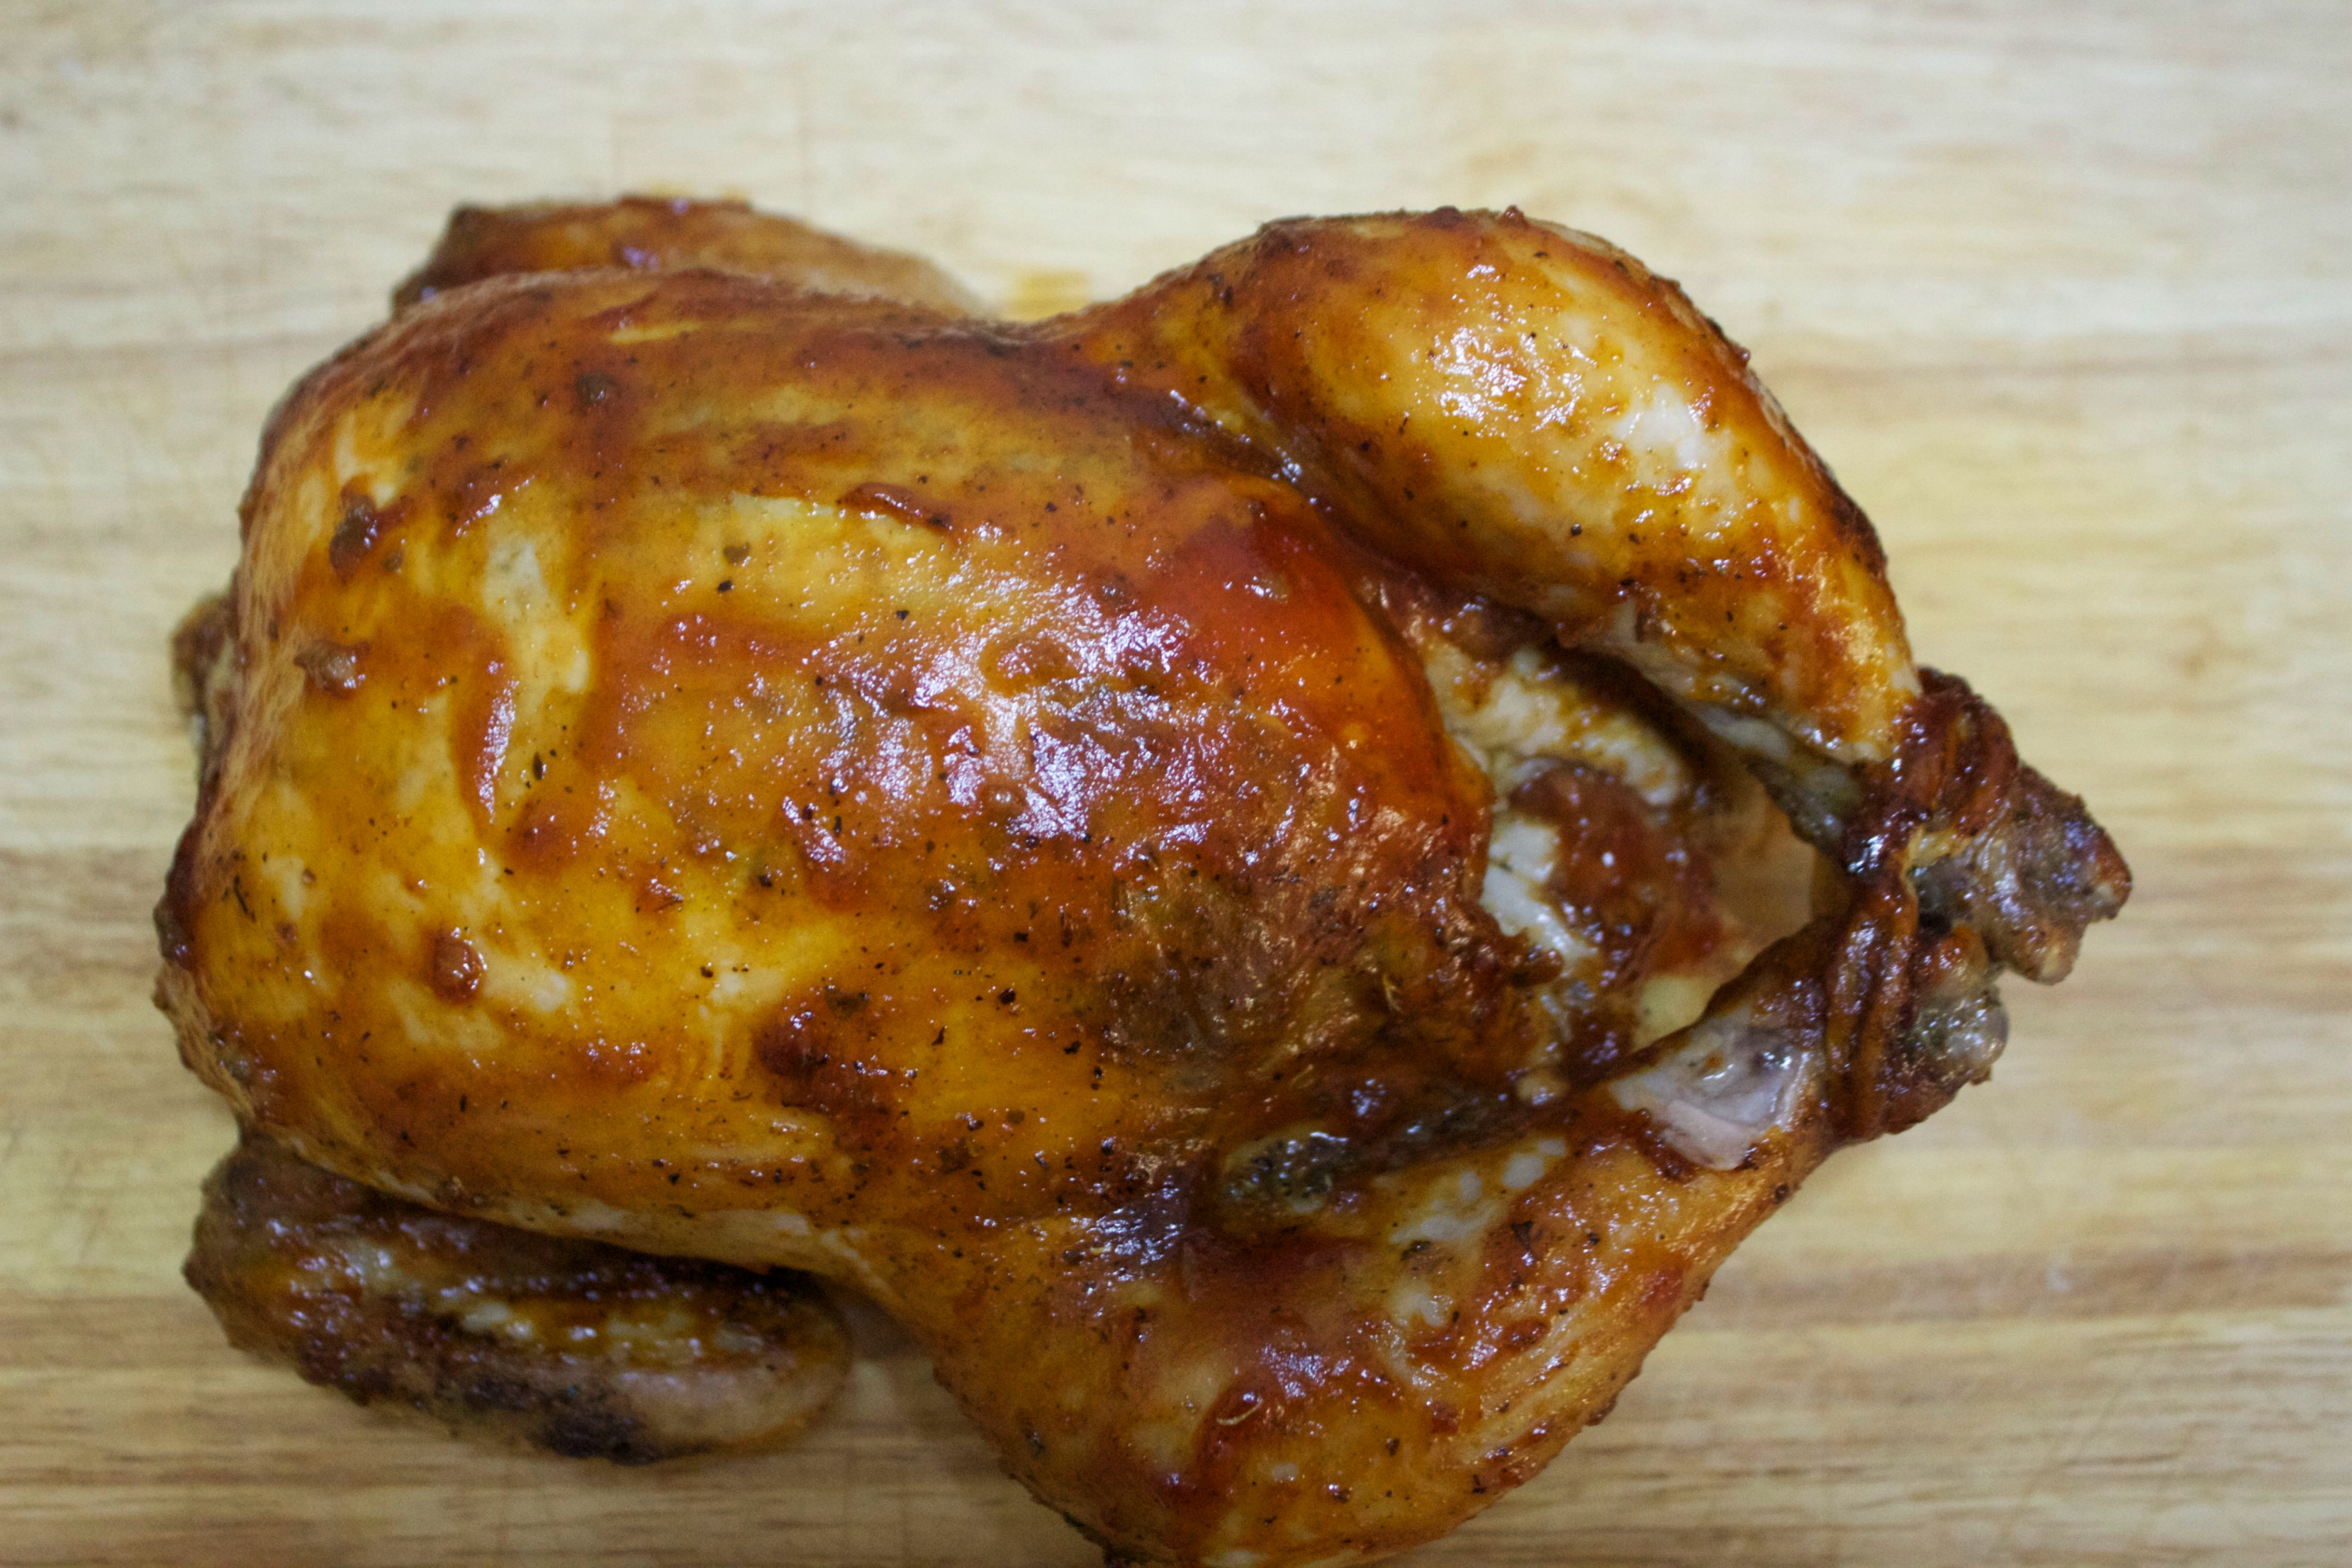 Tender and juicy barbecue roasted chicken